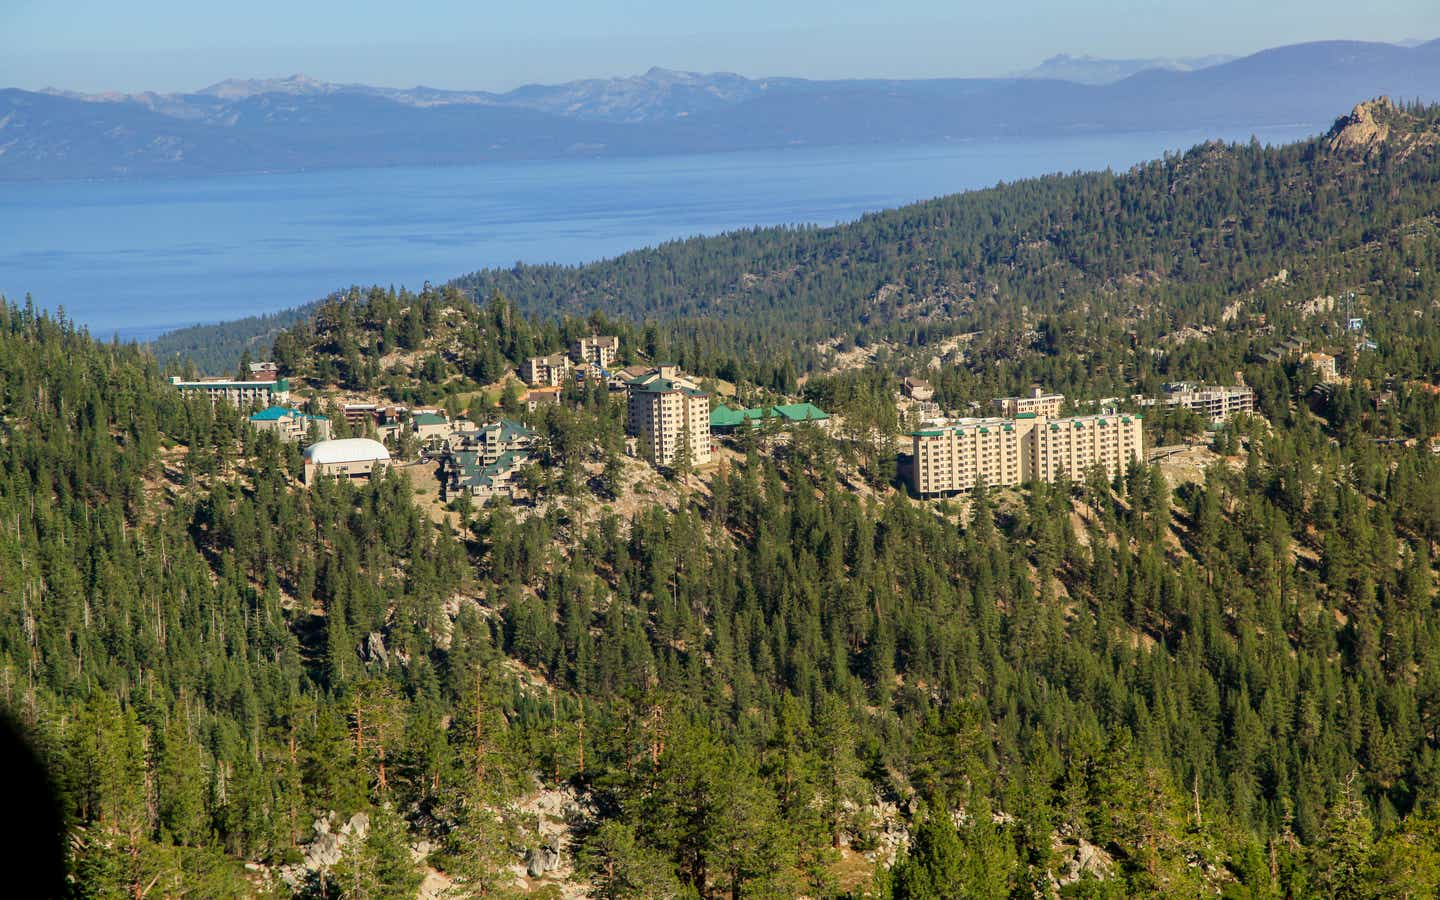 Aerial view of Tahoe Ridge Resort in the summer next to Lake Tahoe